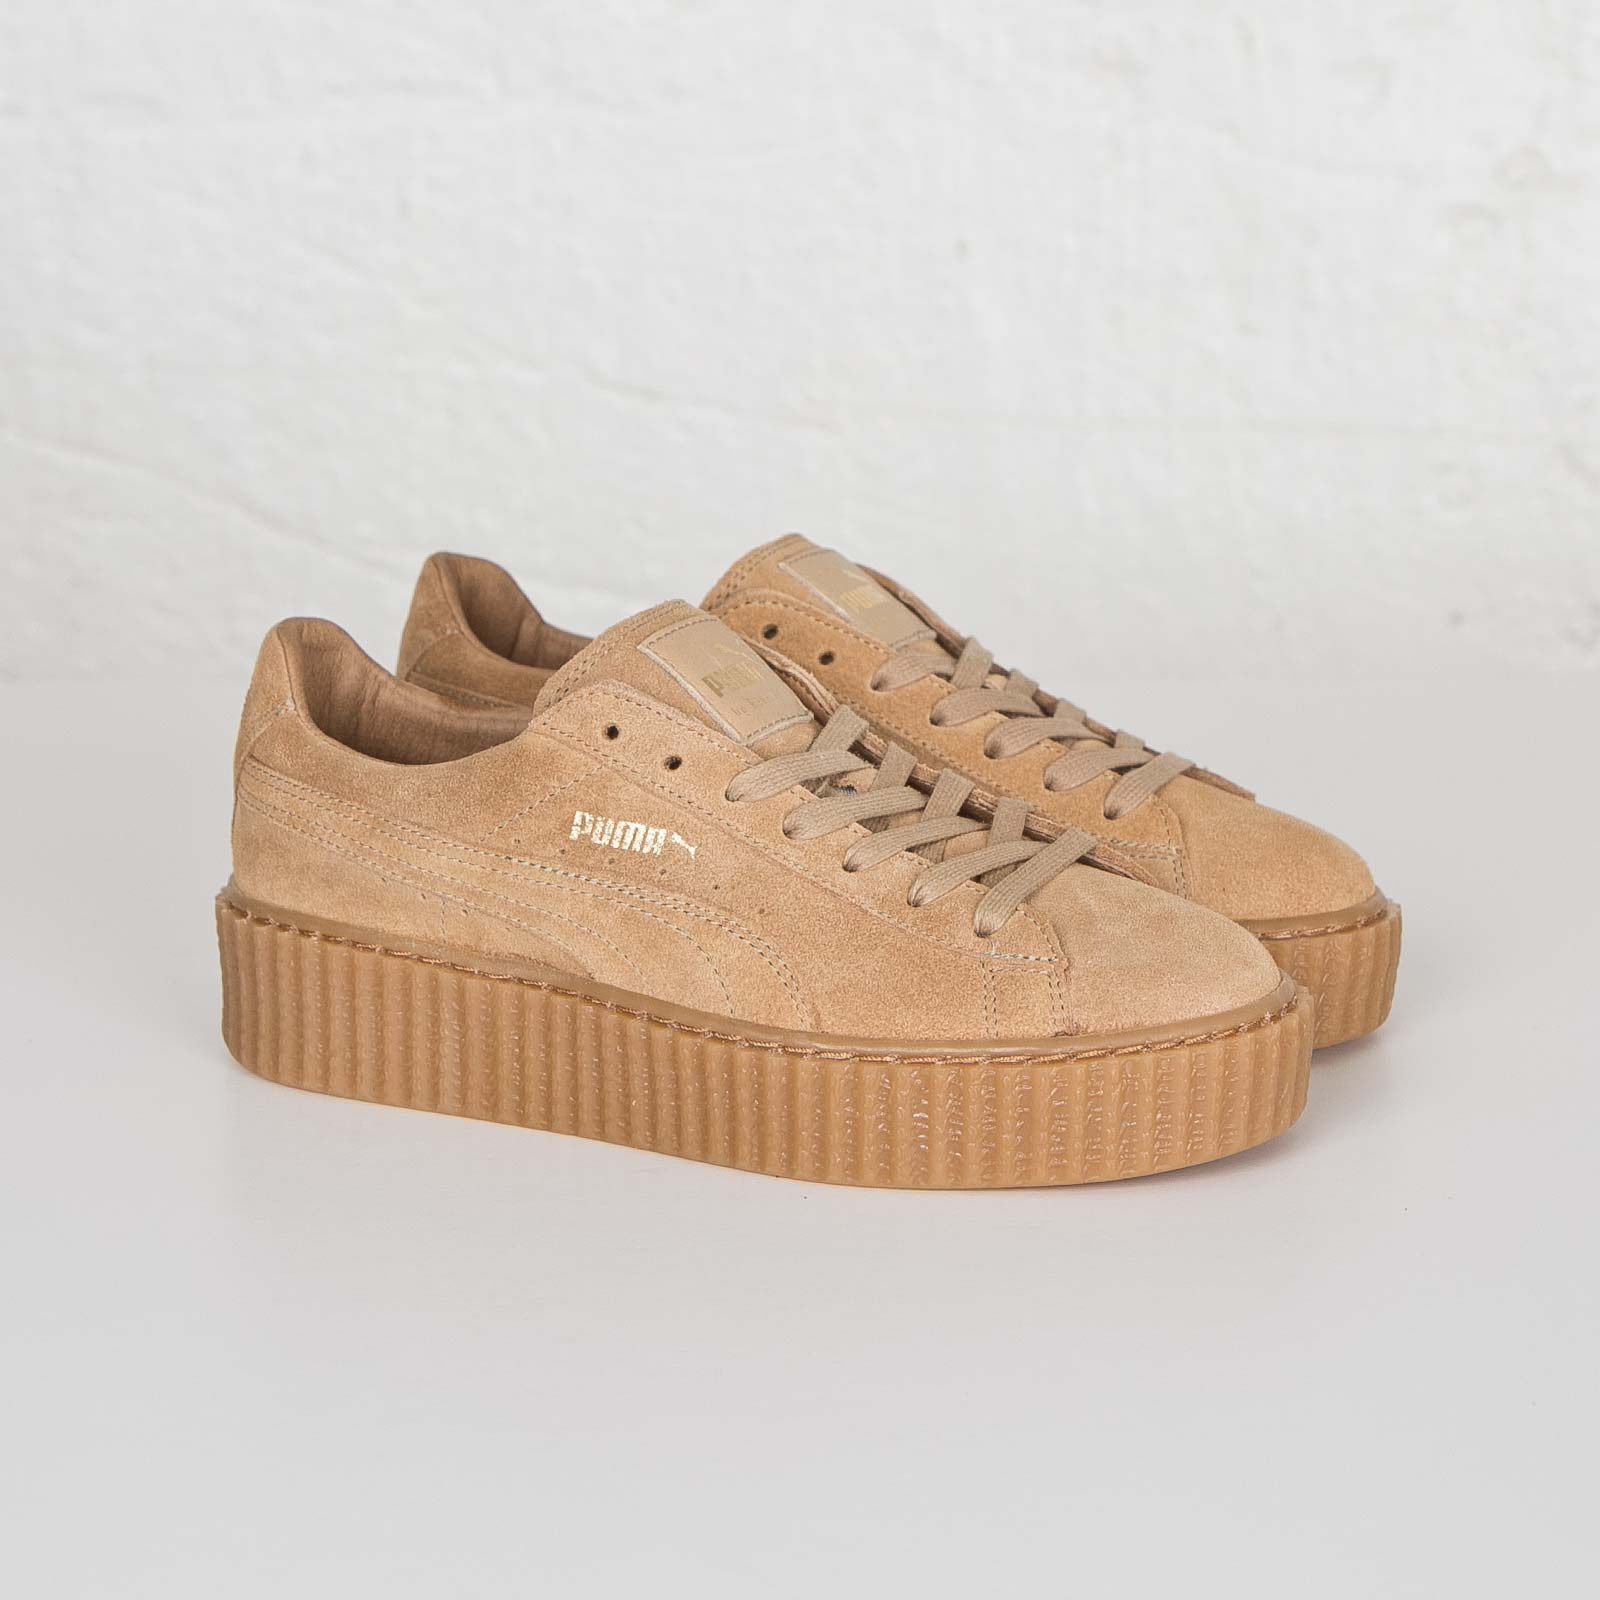 puma creepers beige et or